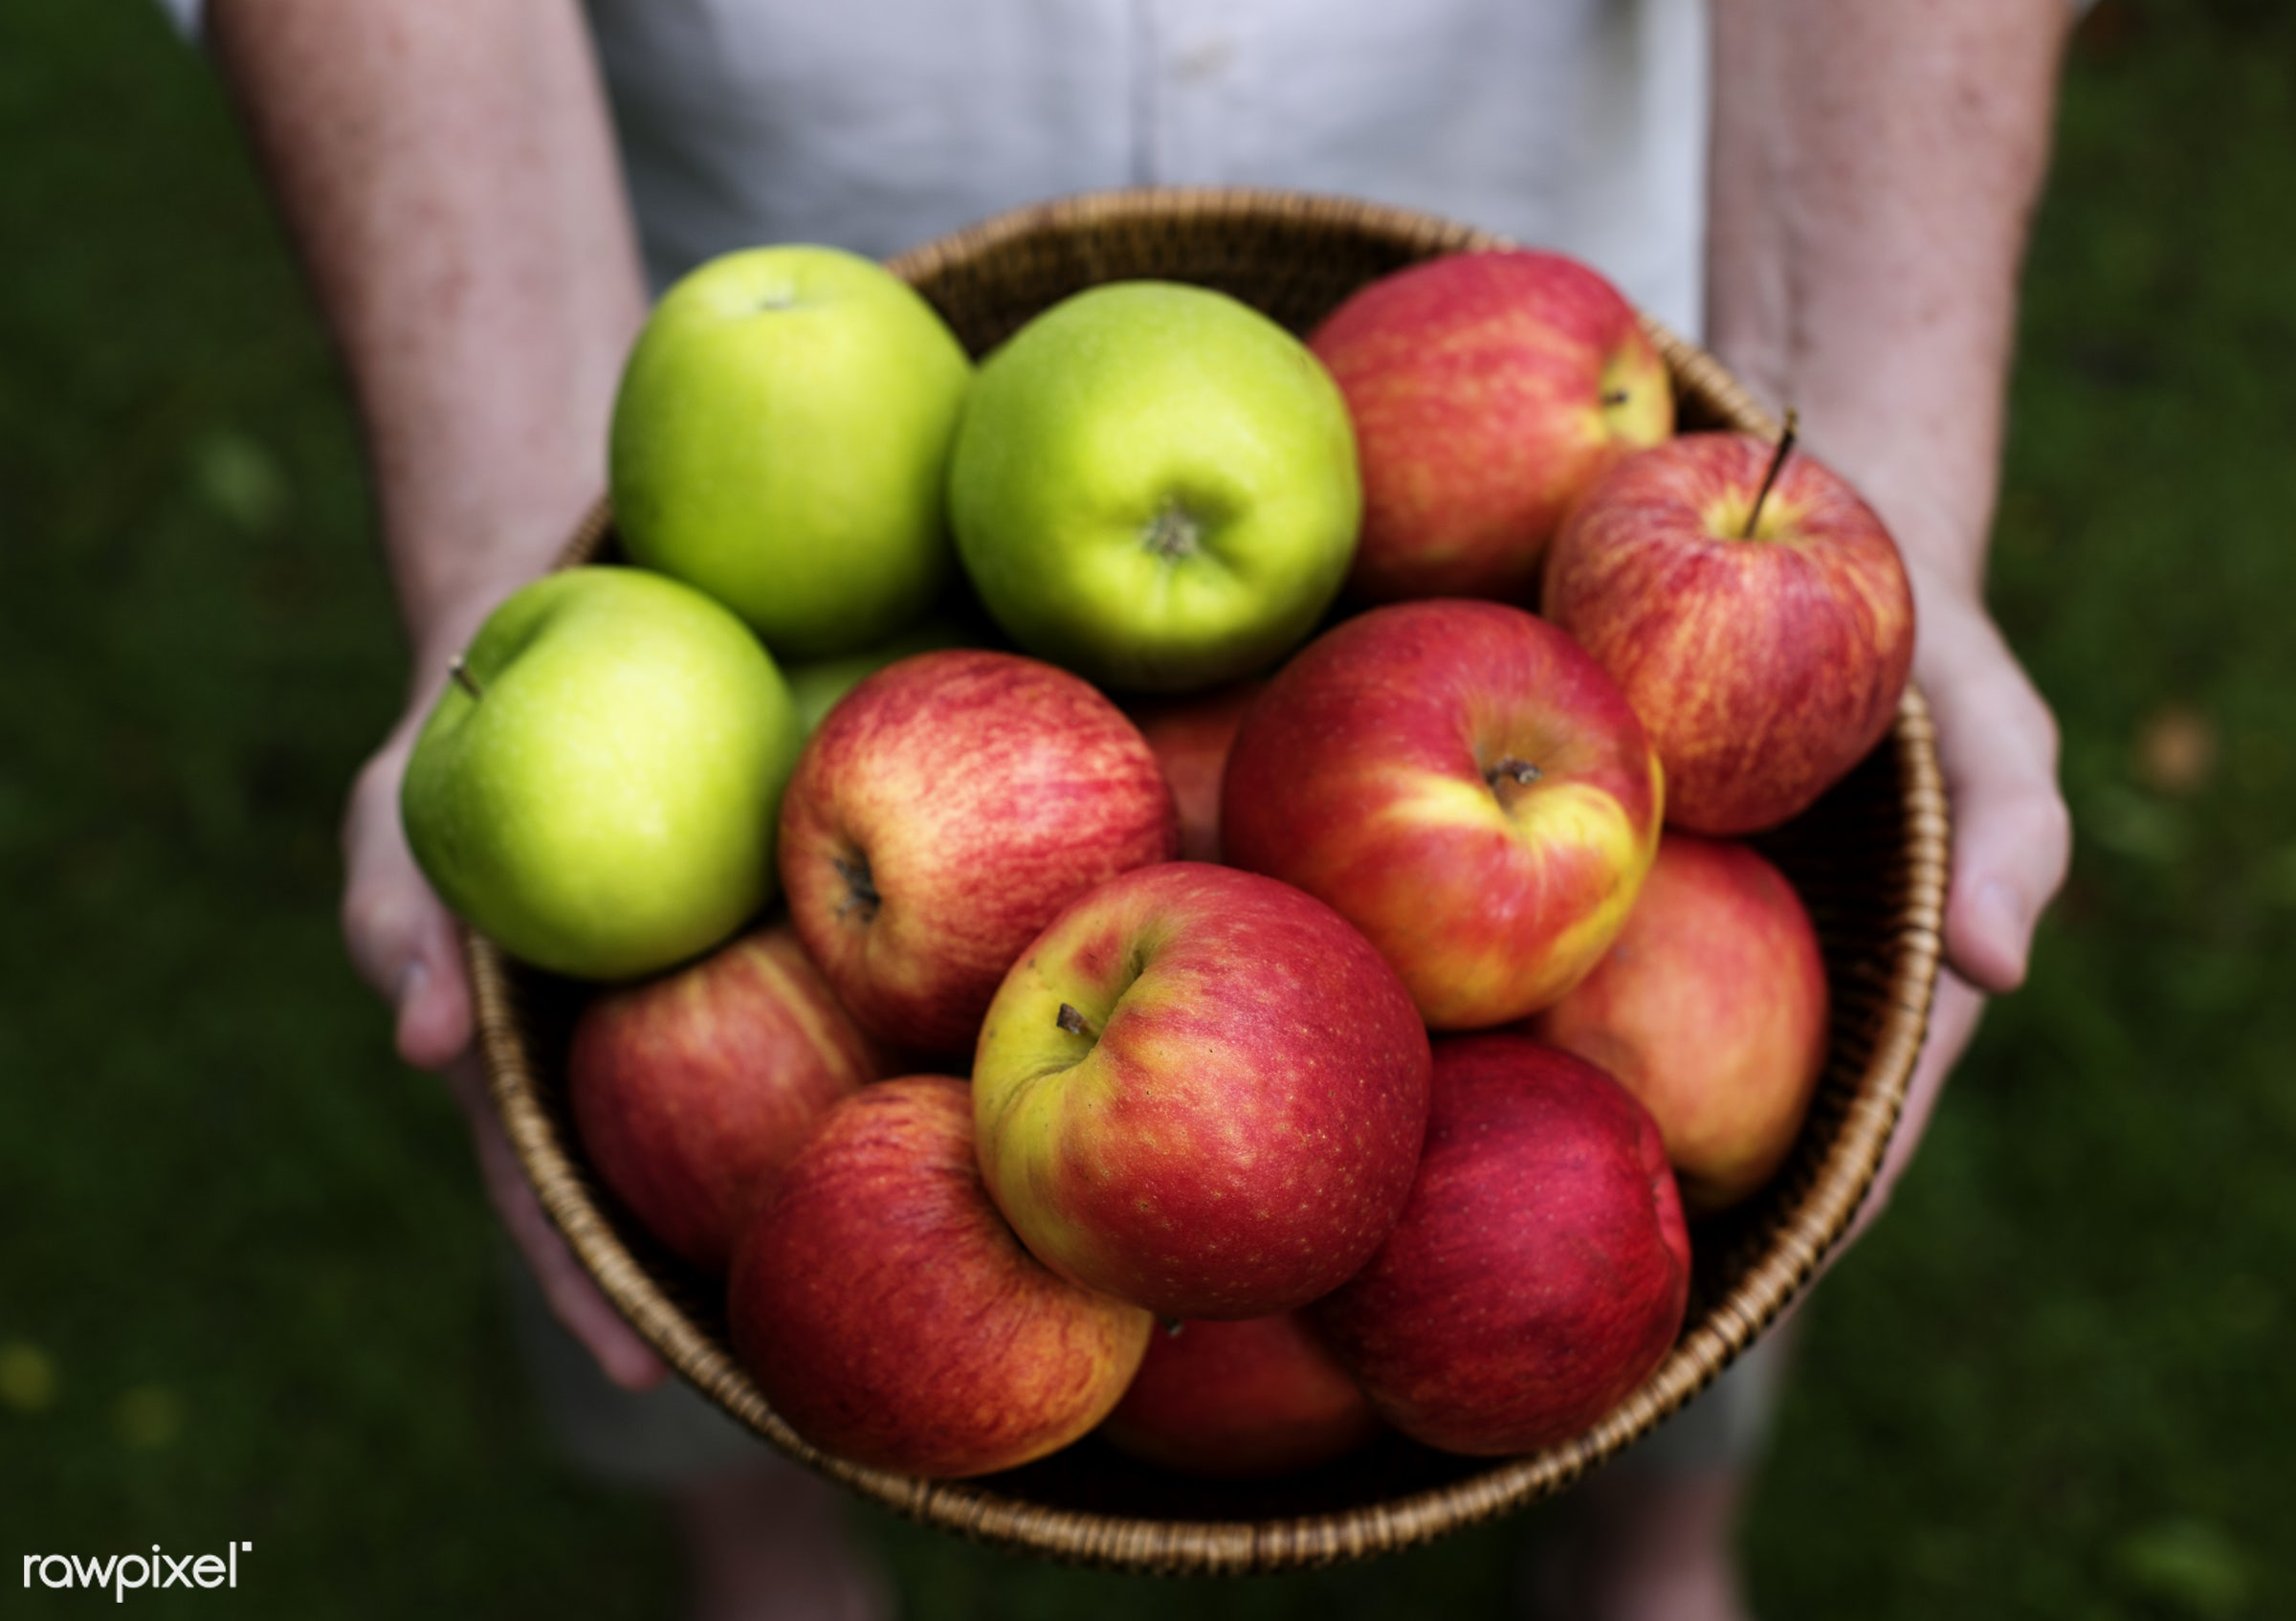 raw, red apple, holding, farm, nature, hands, fresh, apples, closeup, fruits, organic, healthy, green apple, harvest, produce